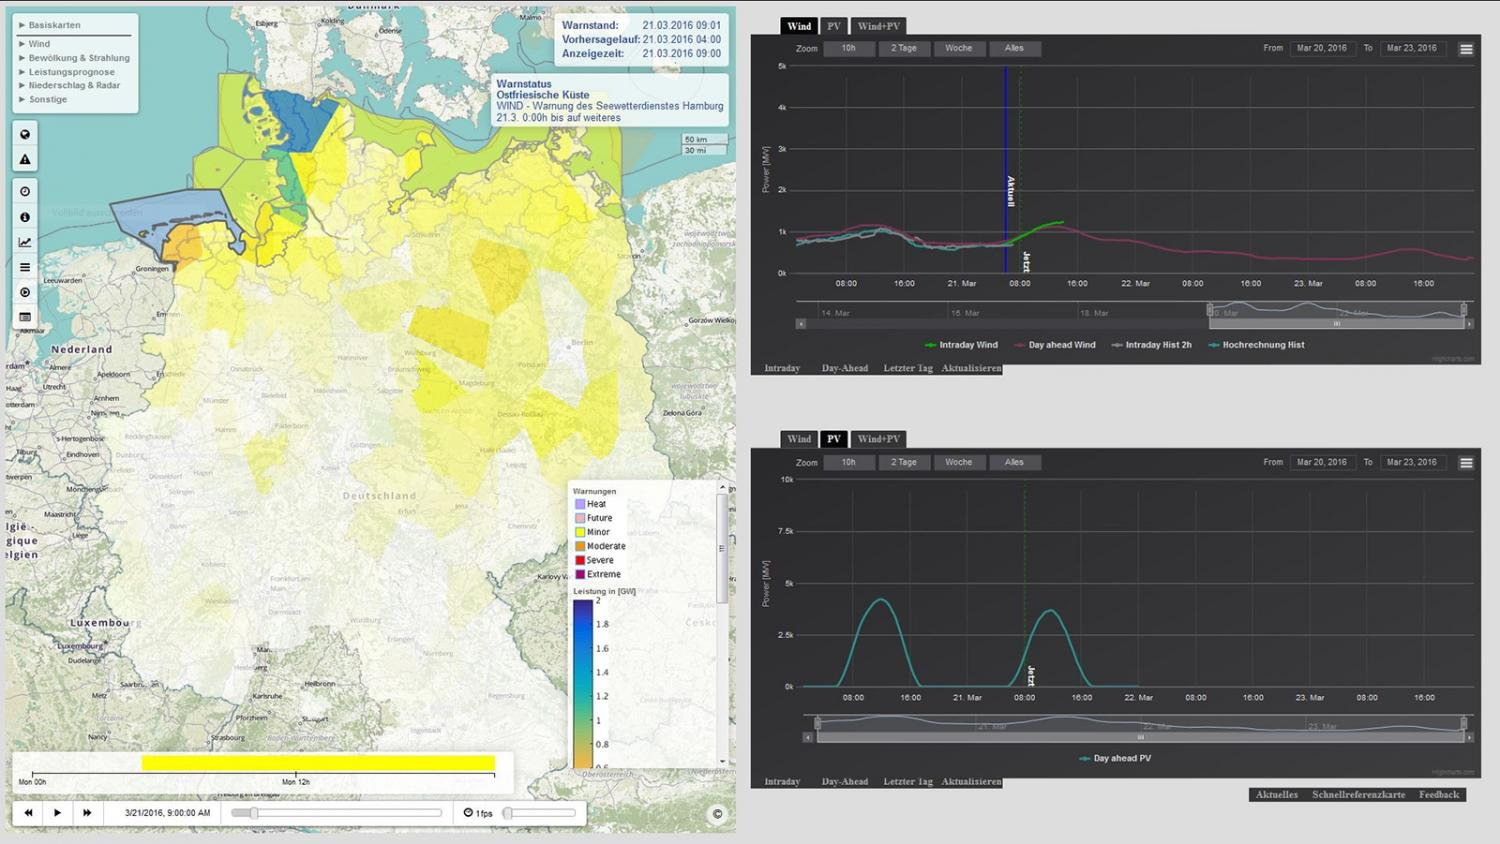 Better forecasting for solar and wind power generation